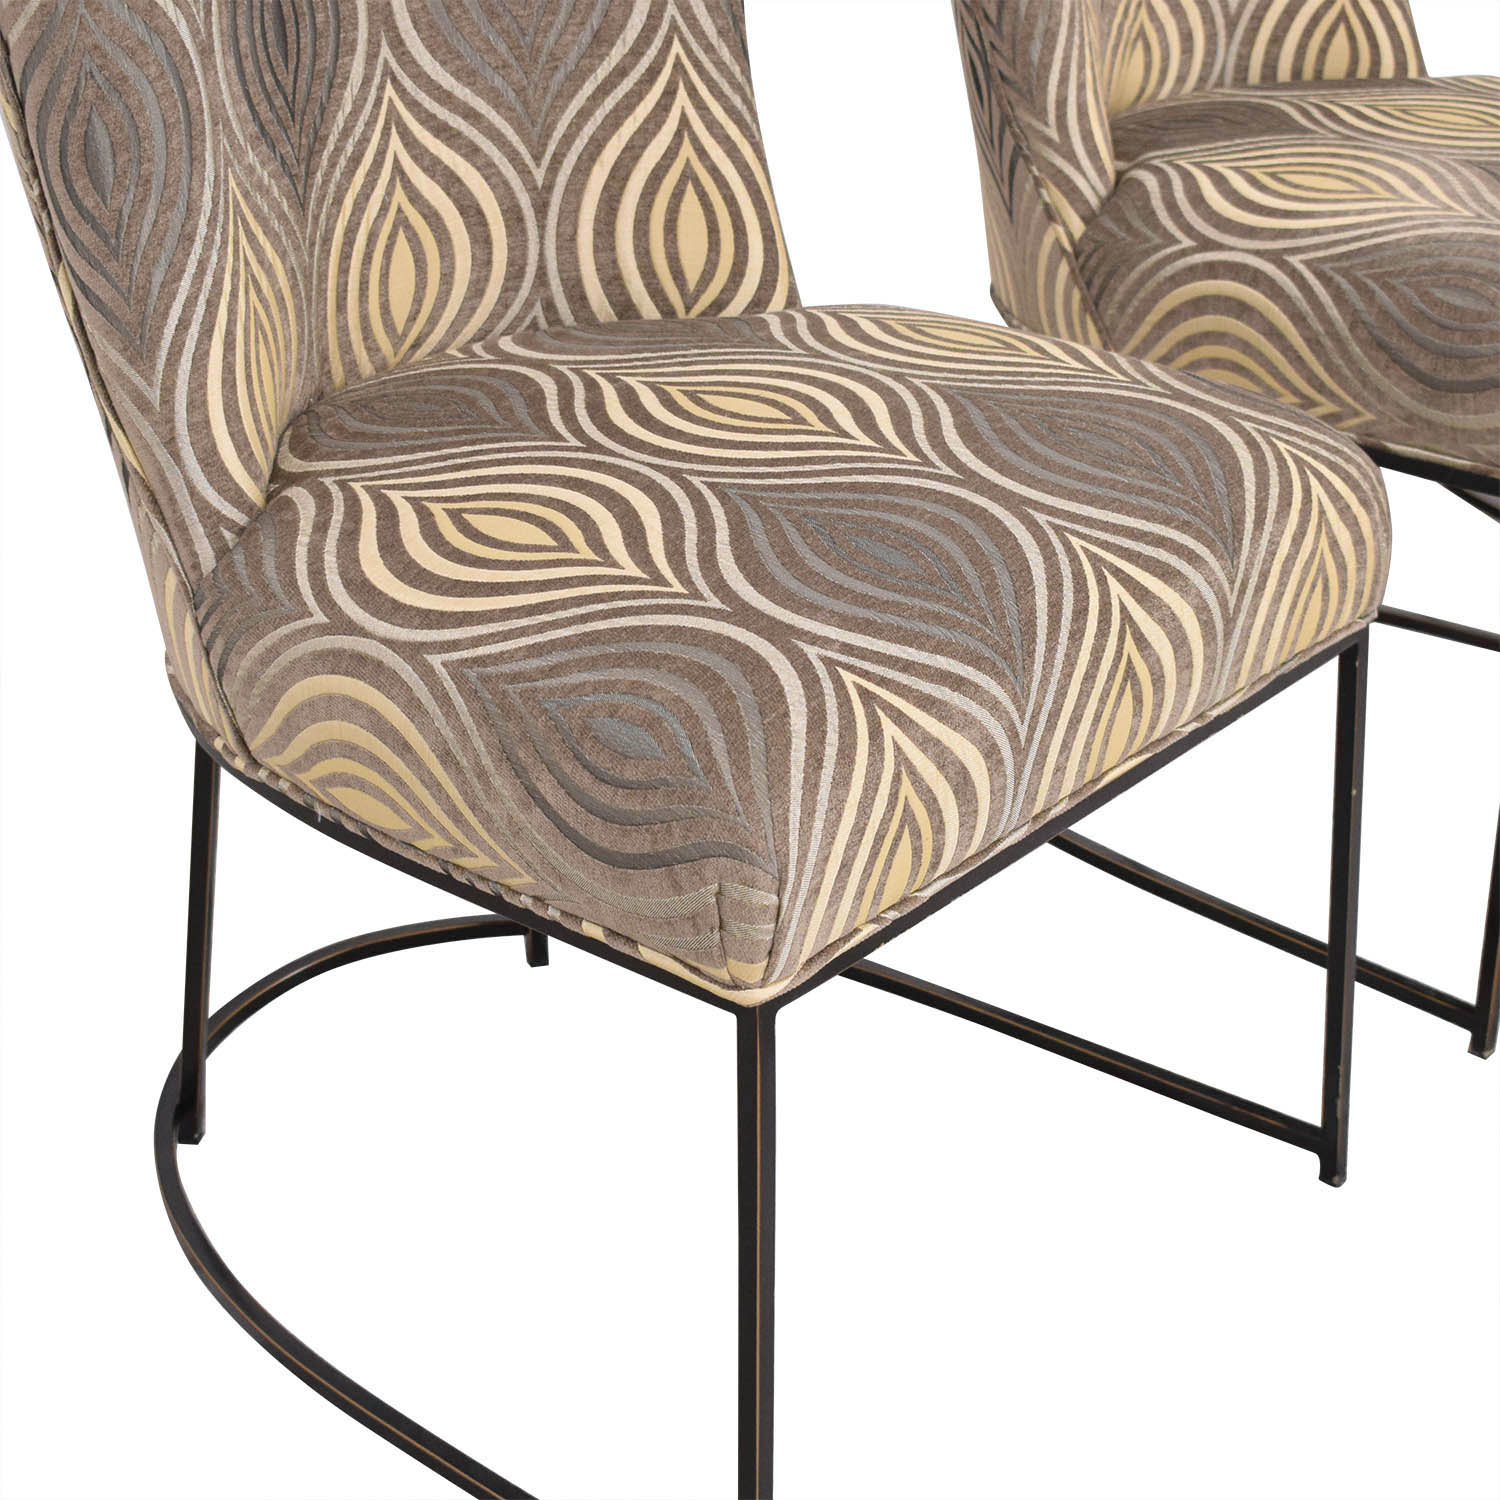 Custom Upholstered Dining Chairs dimensions